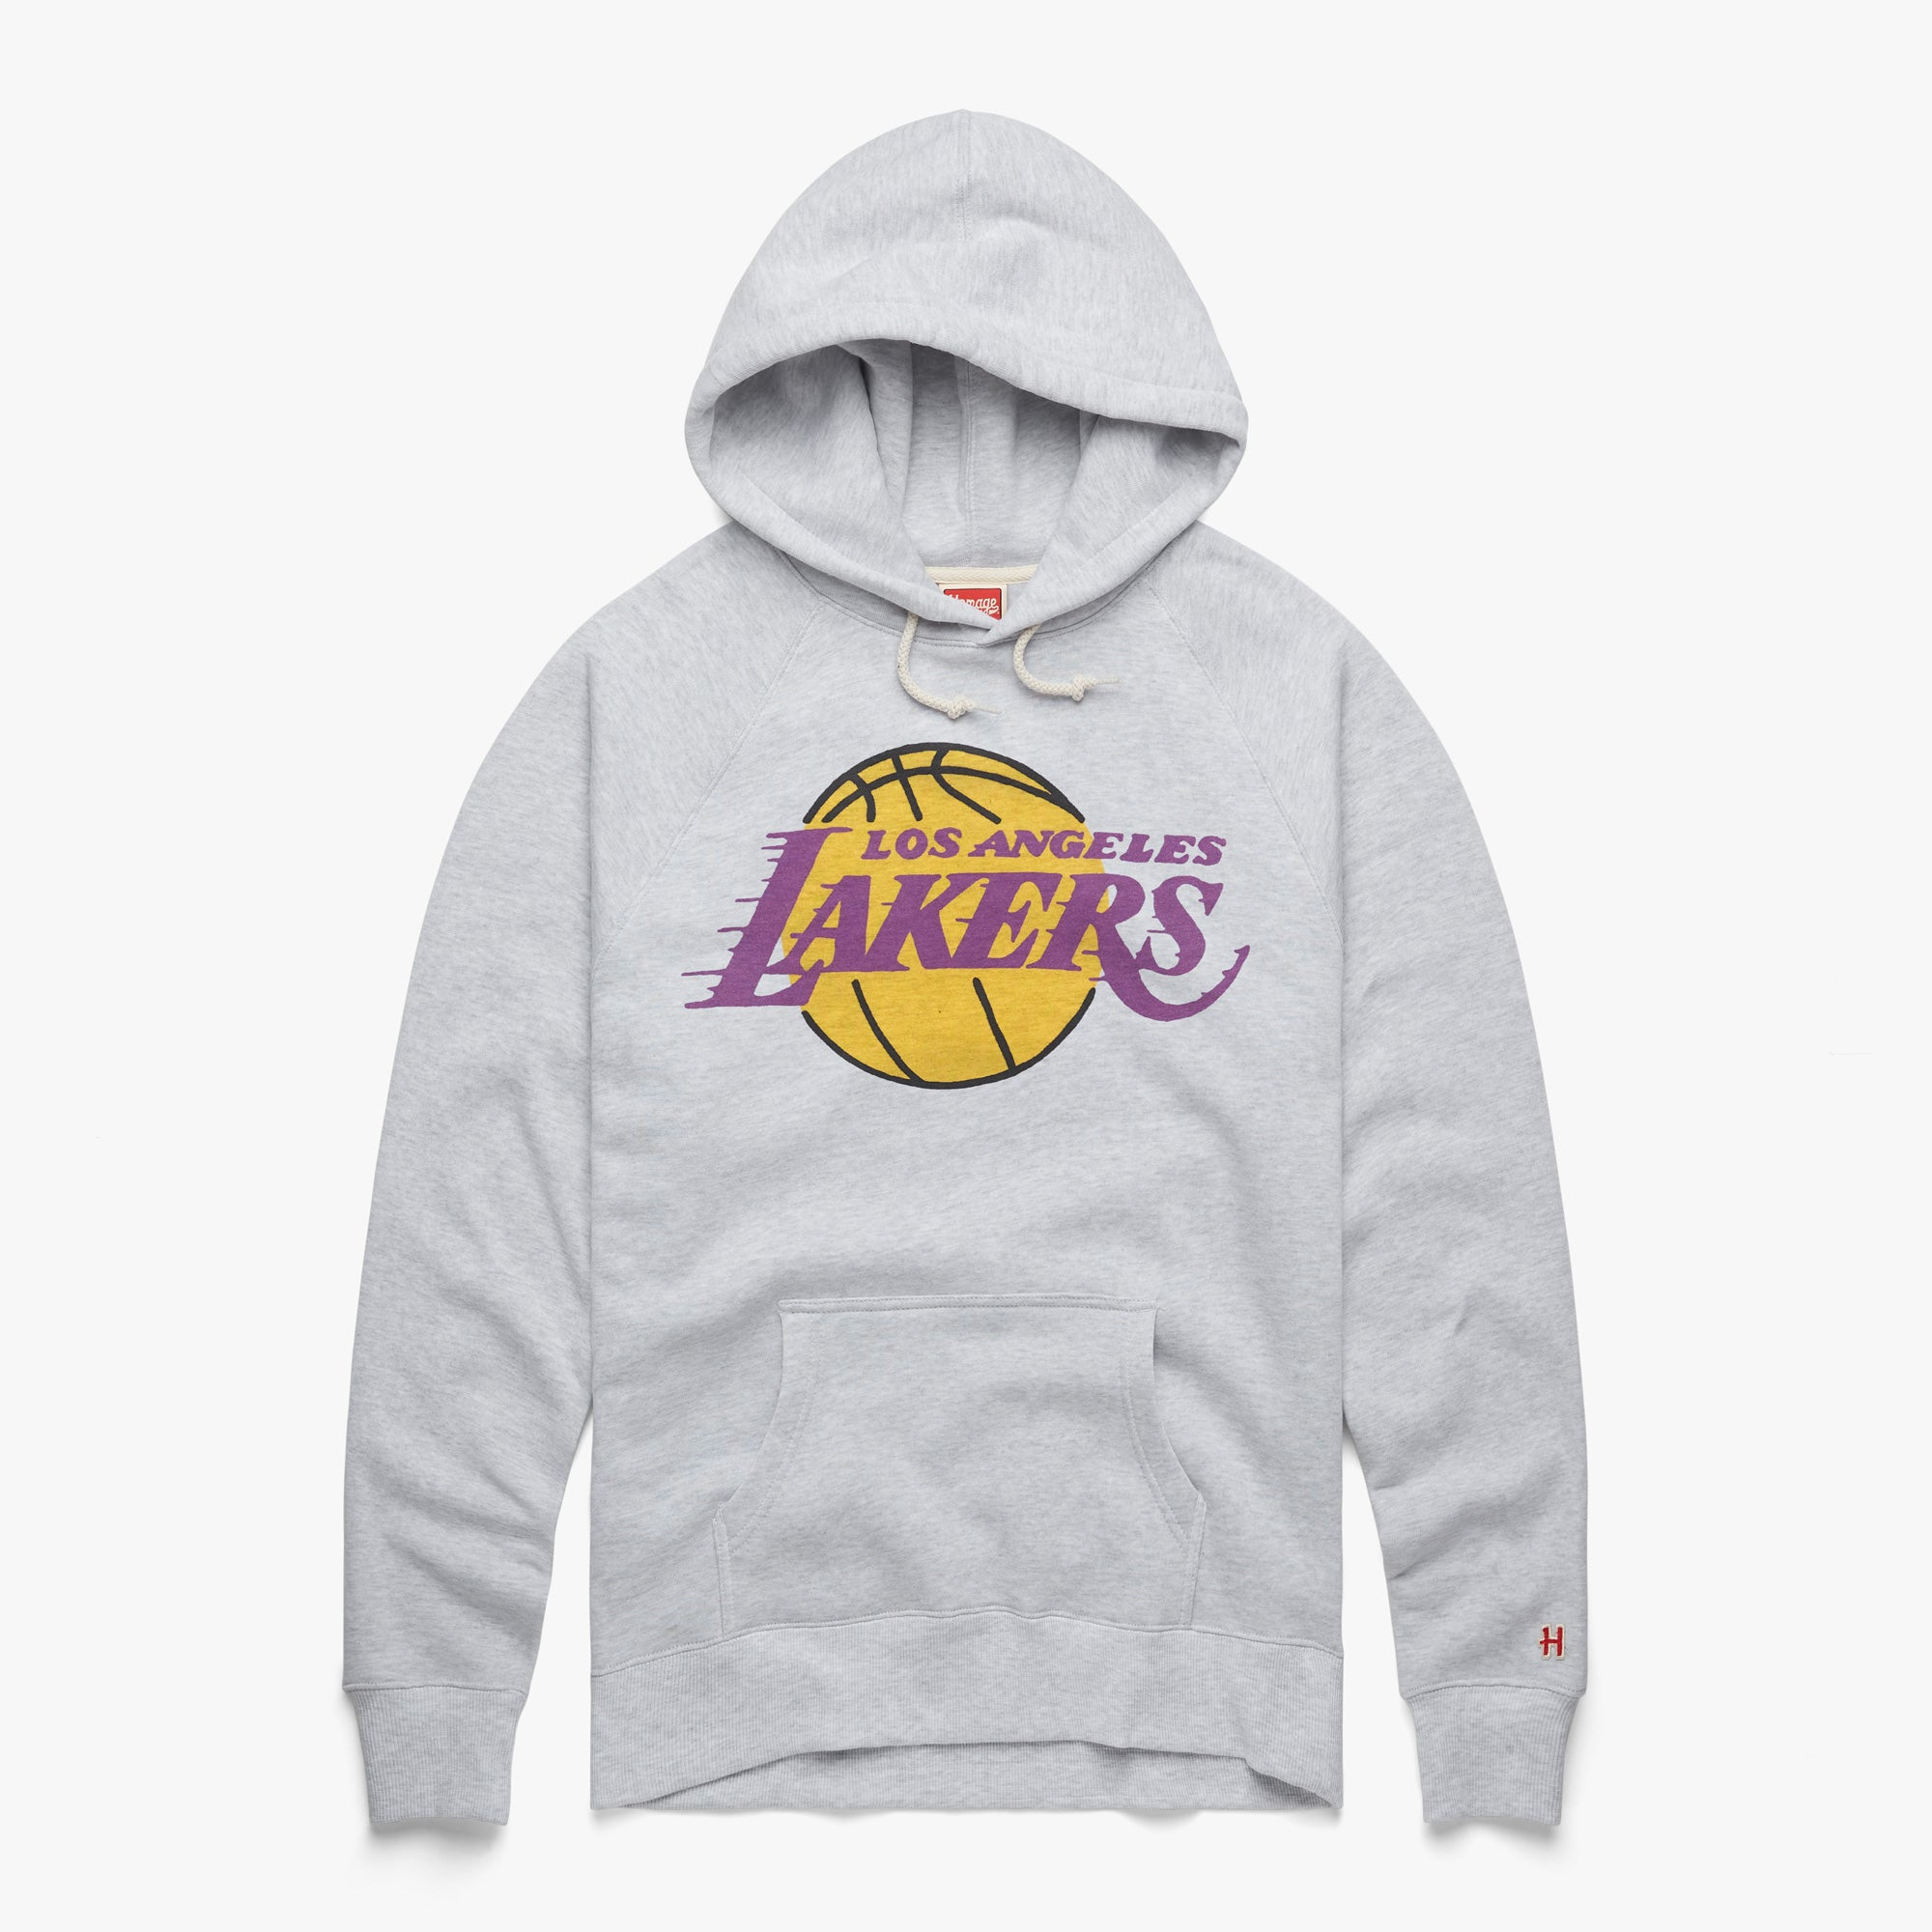 Los Angeles Lakers Hoodie